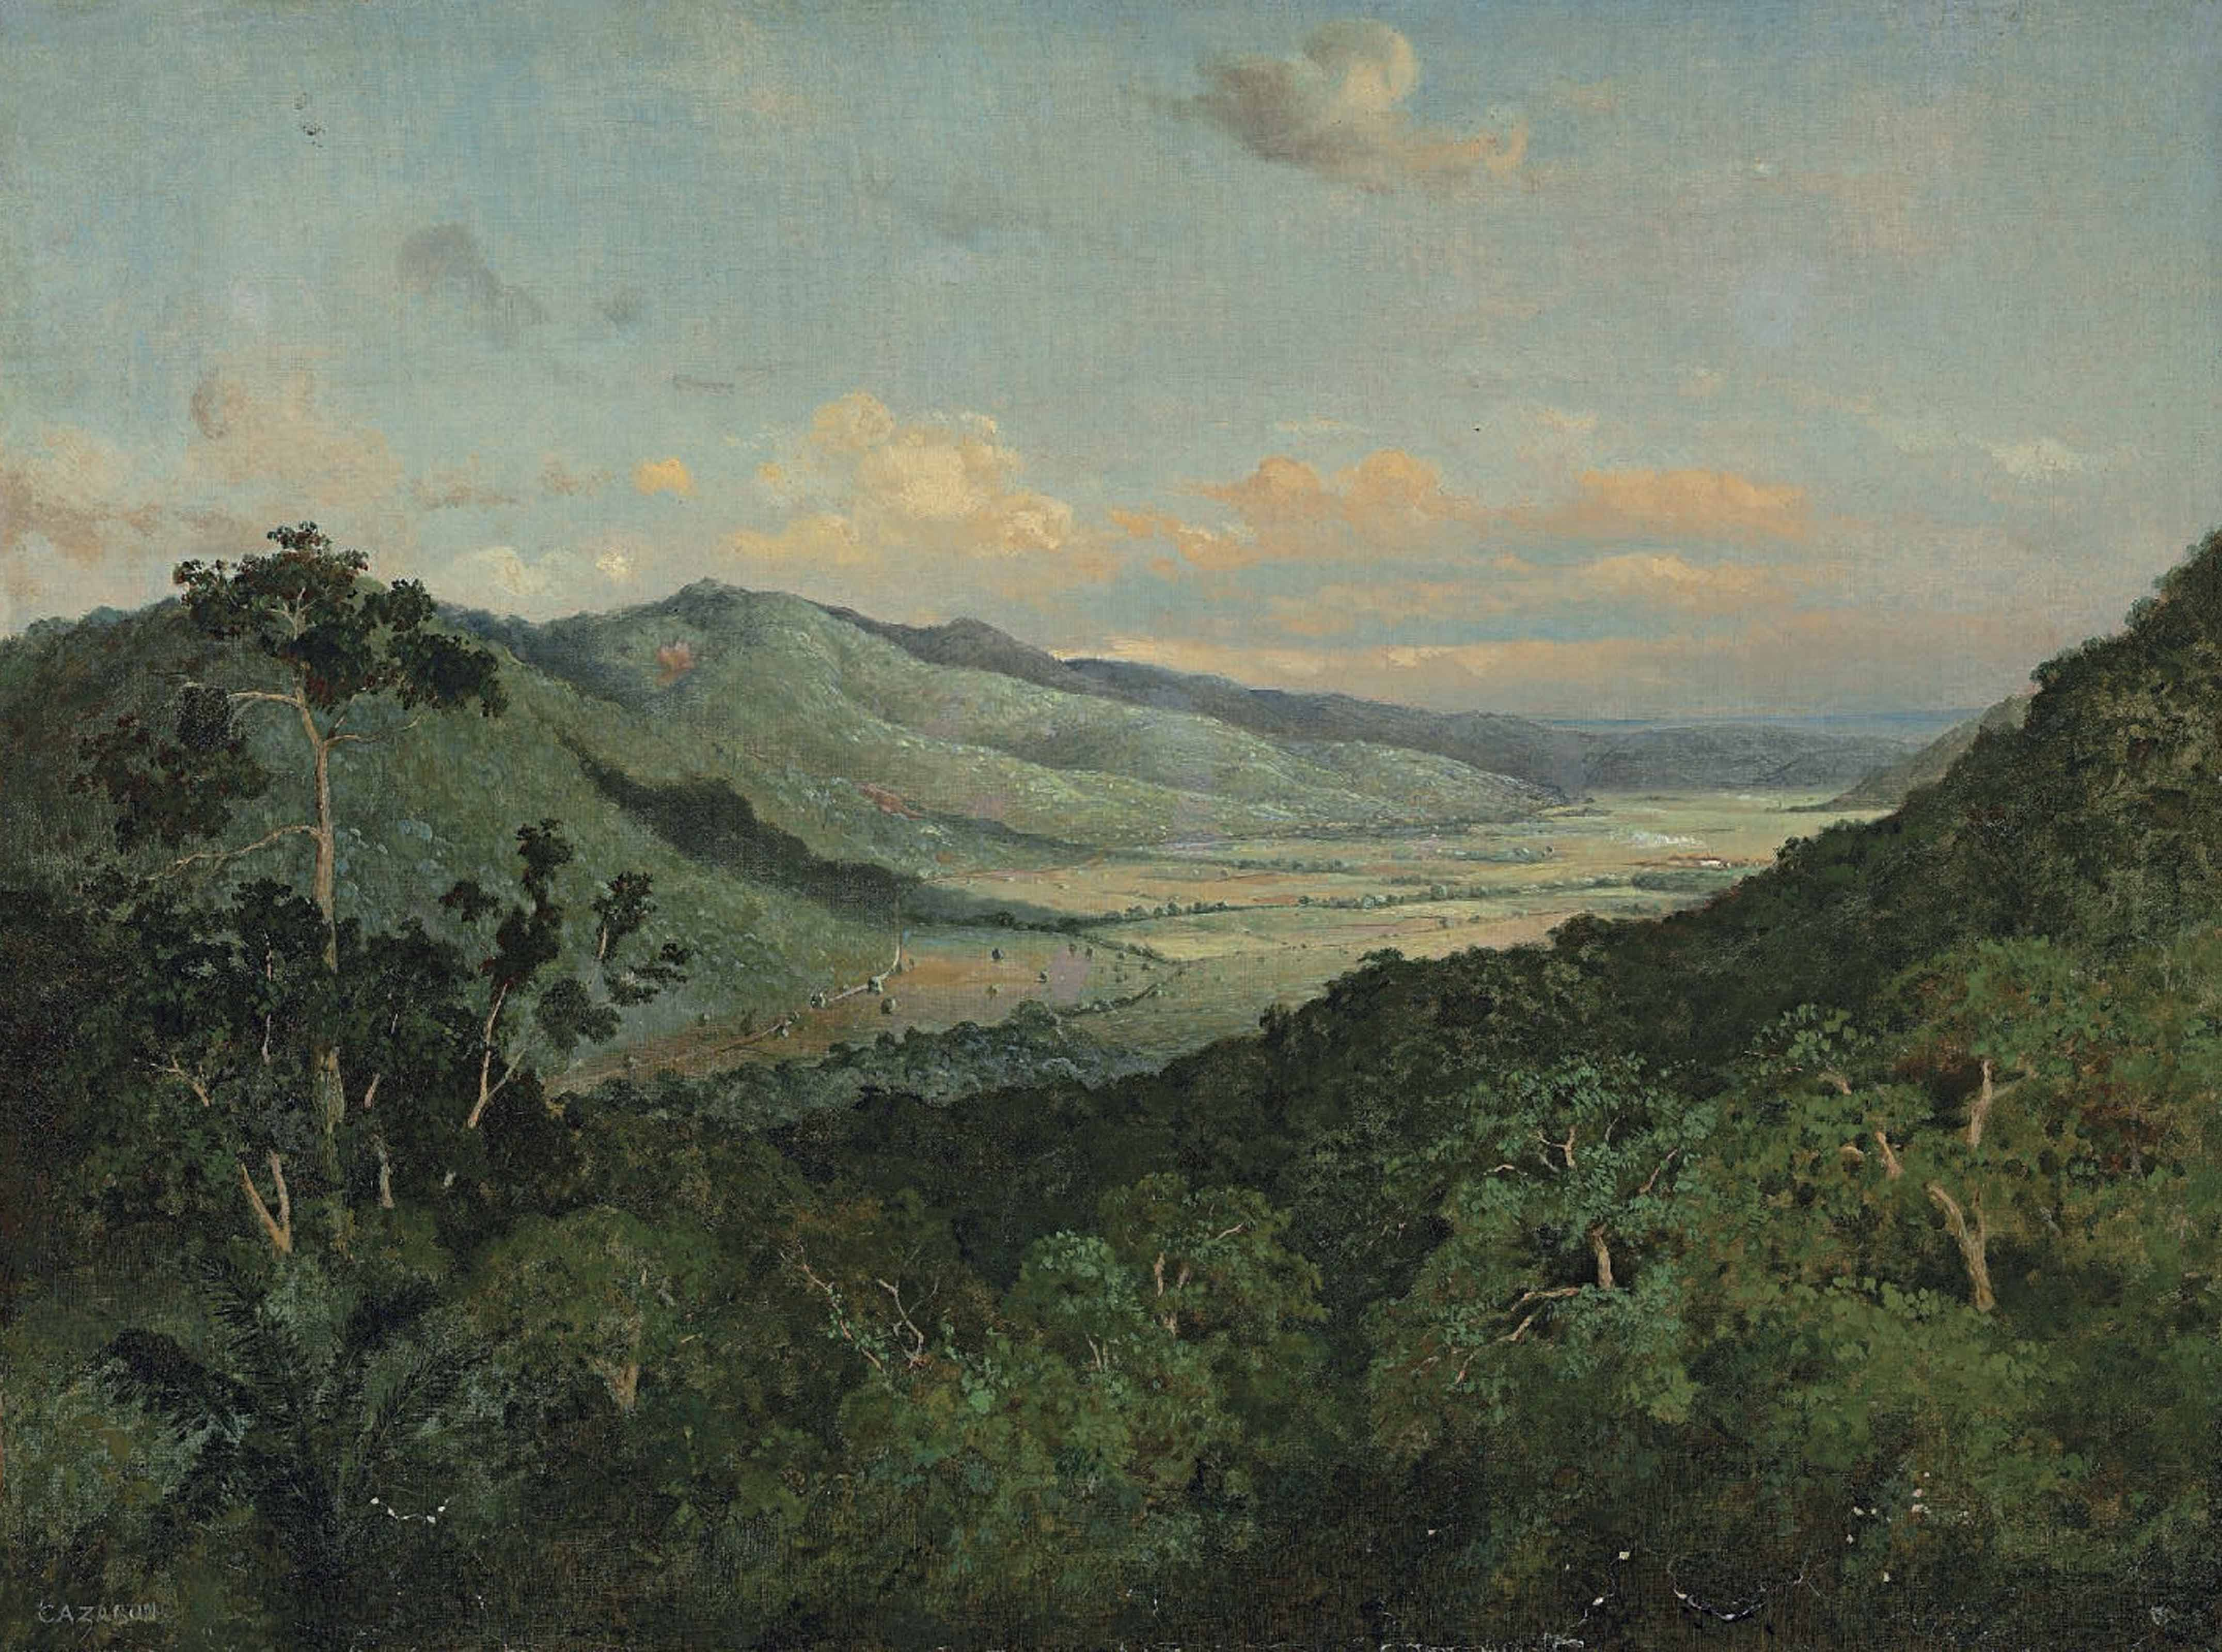 Sunlit Valley (Diego Martin Valley from Fort George), Trinidad